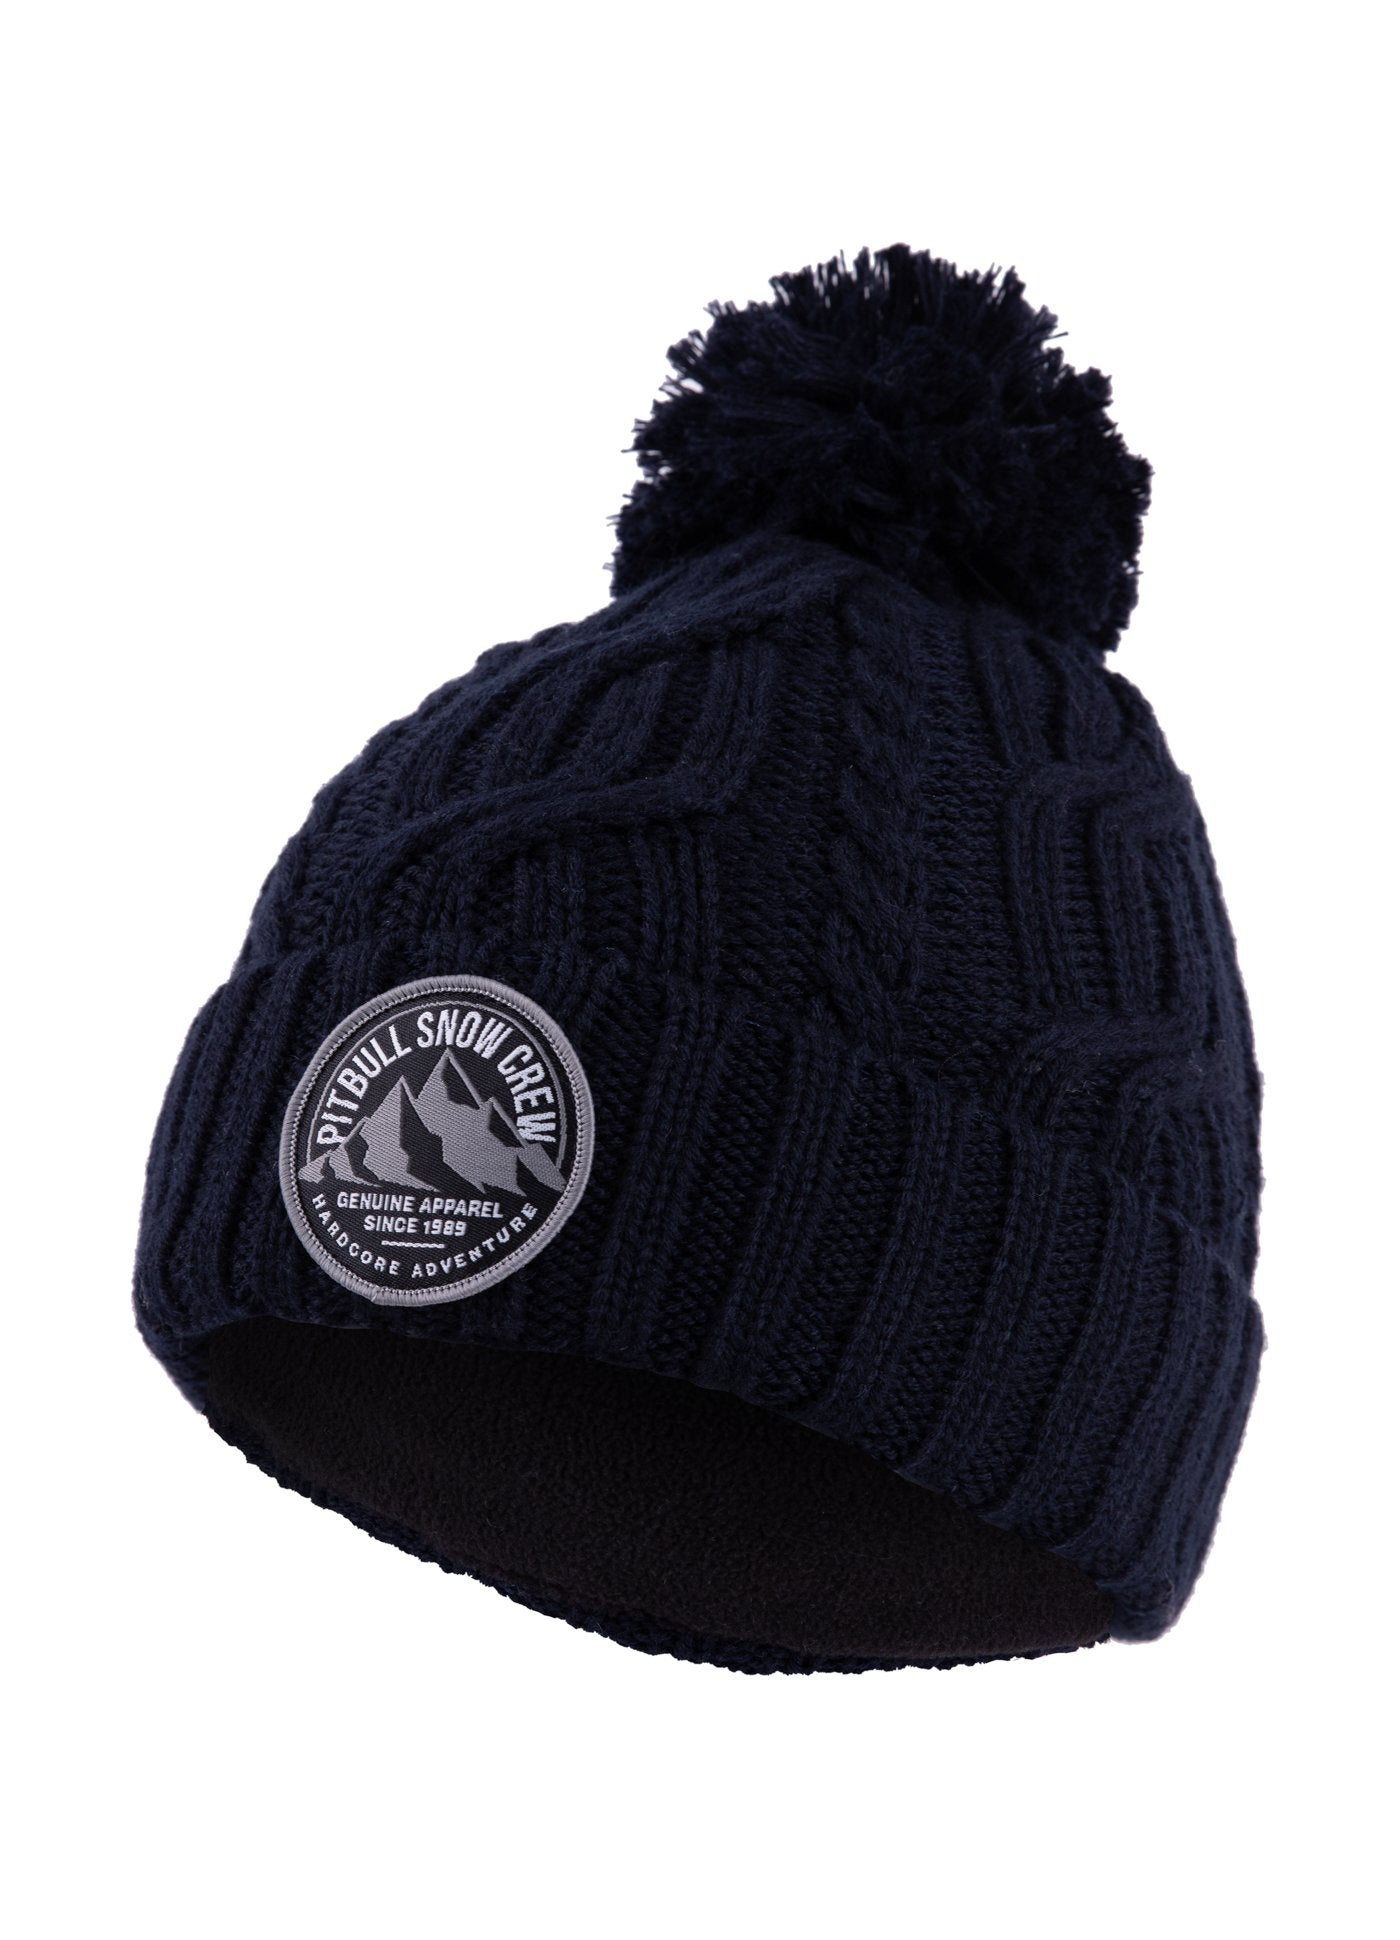 """SNOW CREW"" Winter Beanie Dark Navy - Pitbull West Coast  UK Store"